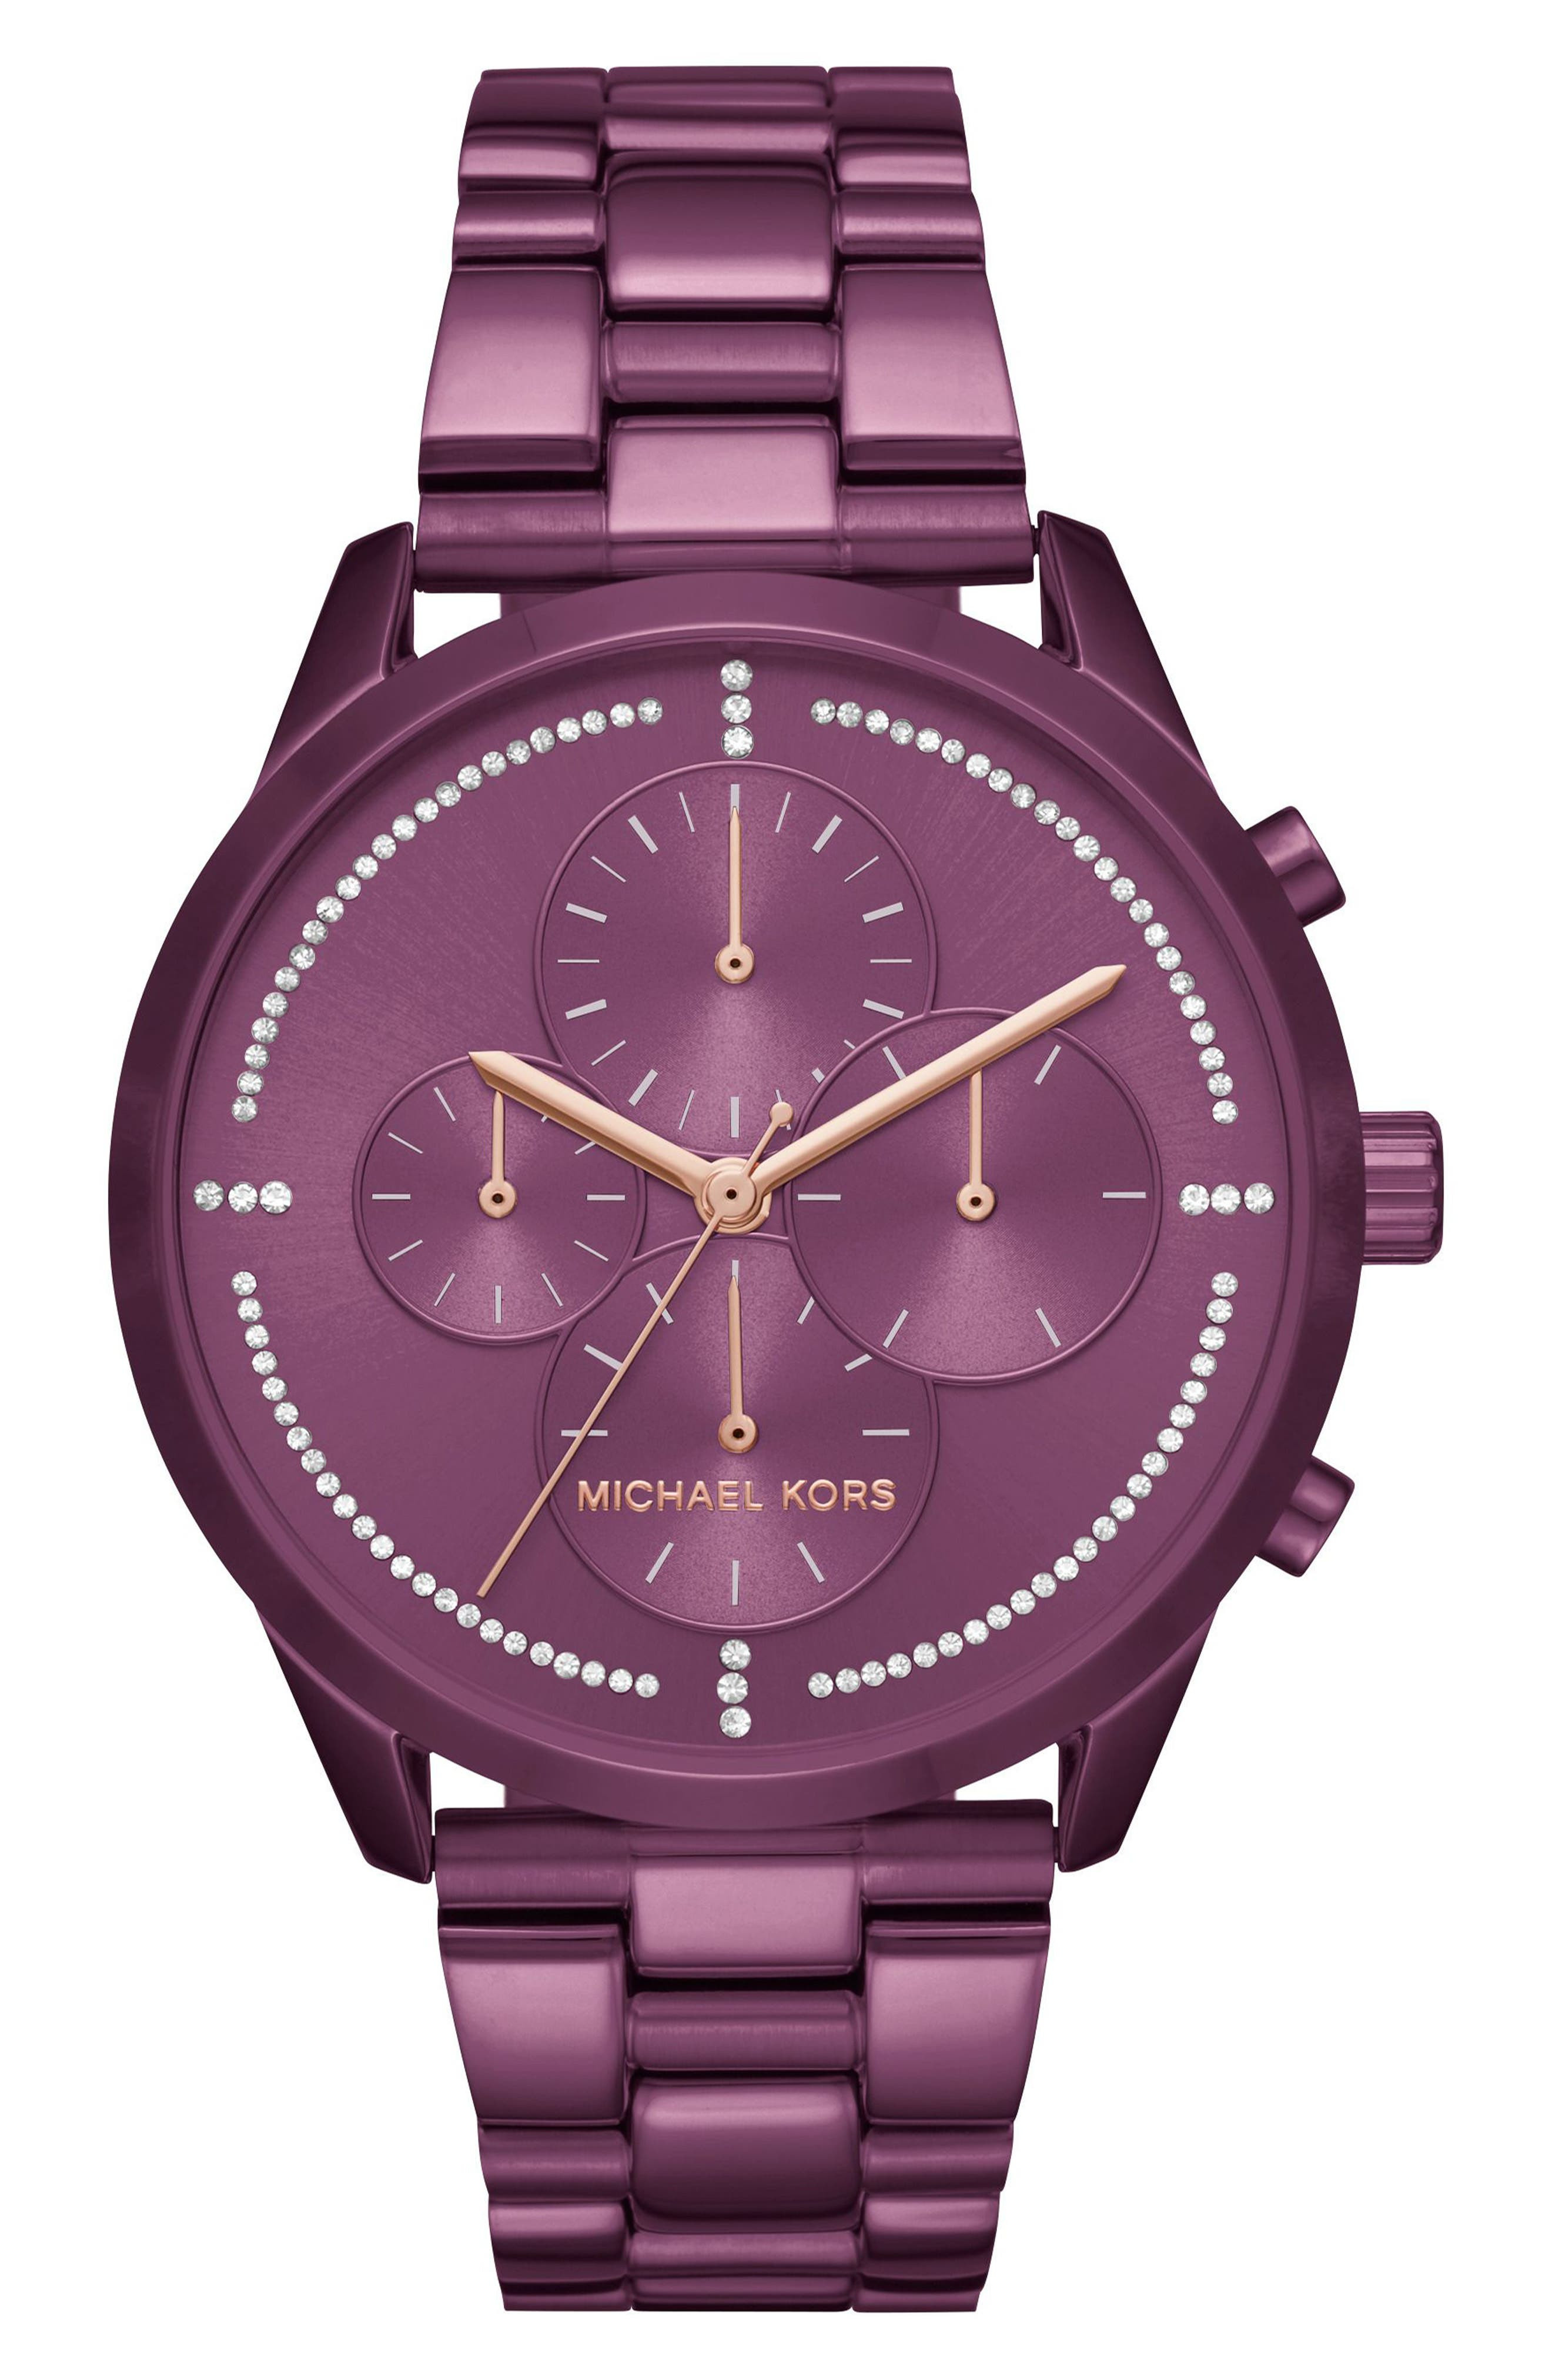 Main Image - Michael Kors Slater Chronograph Bracelet Watch, 40mm